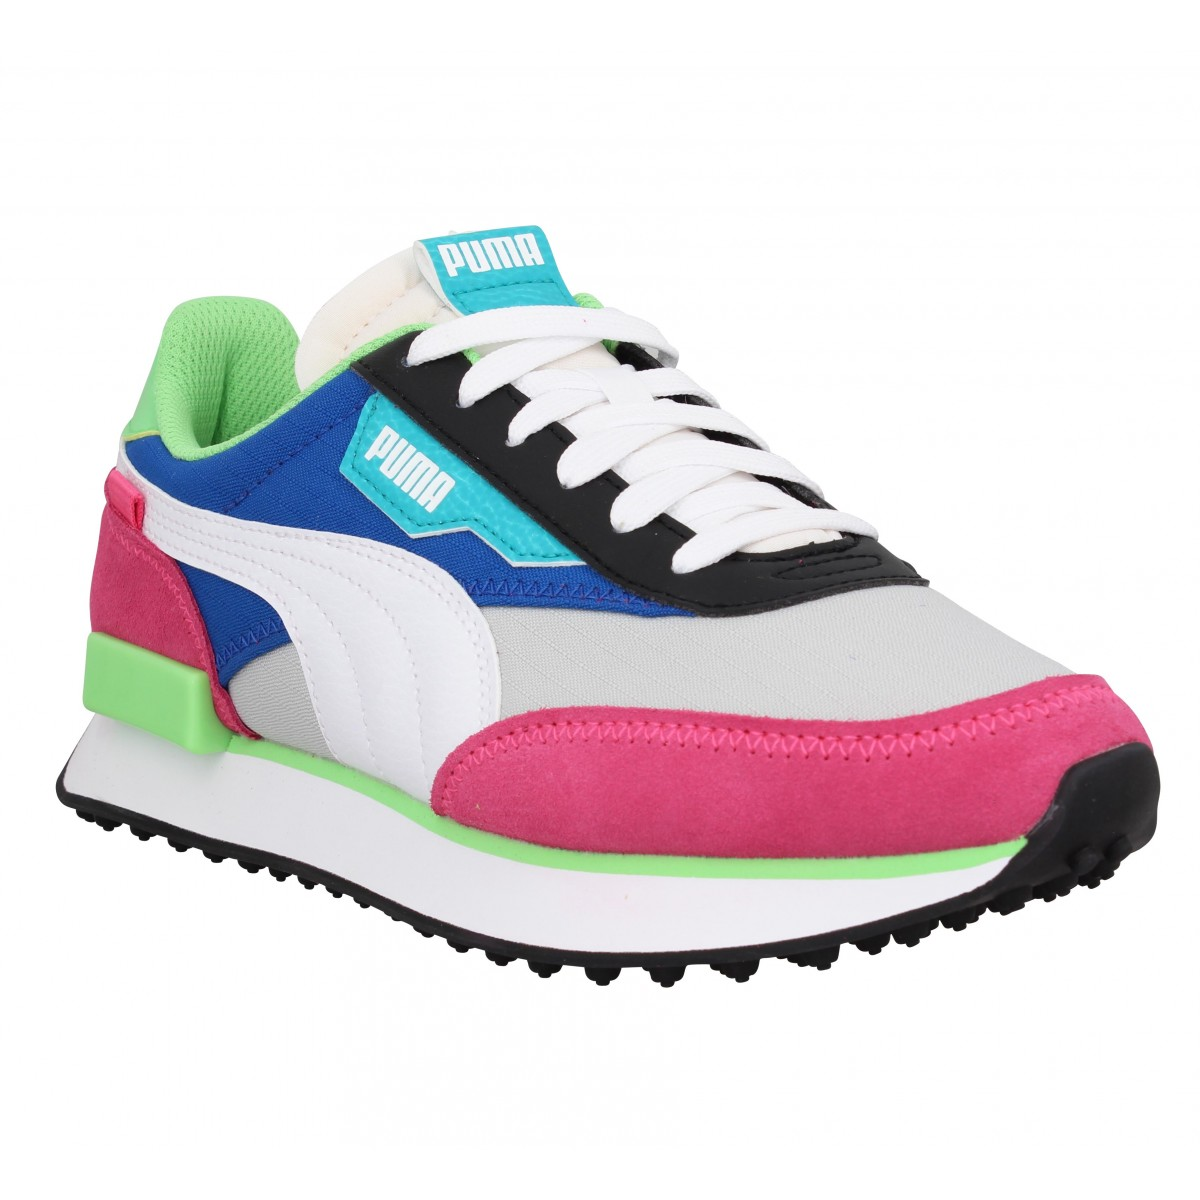 Puma Femme Future Rider Play On Velours...